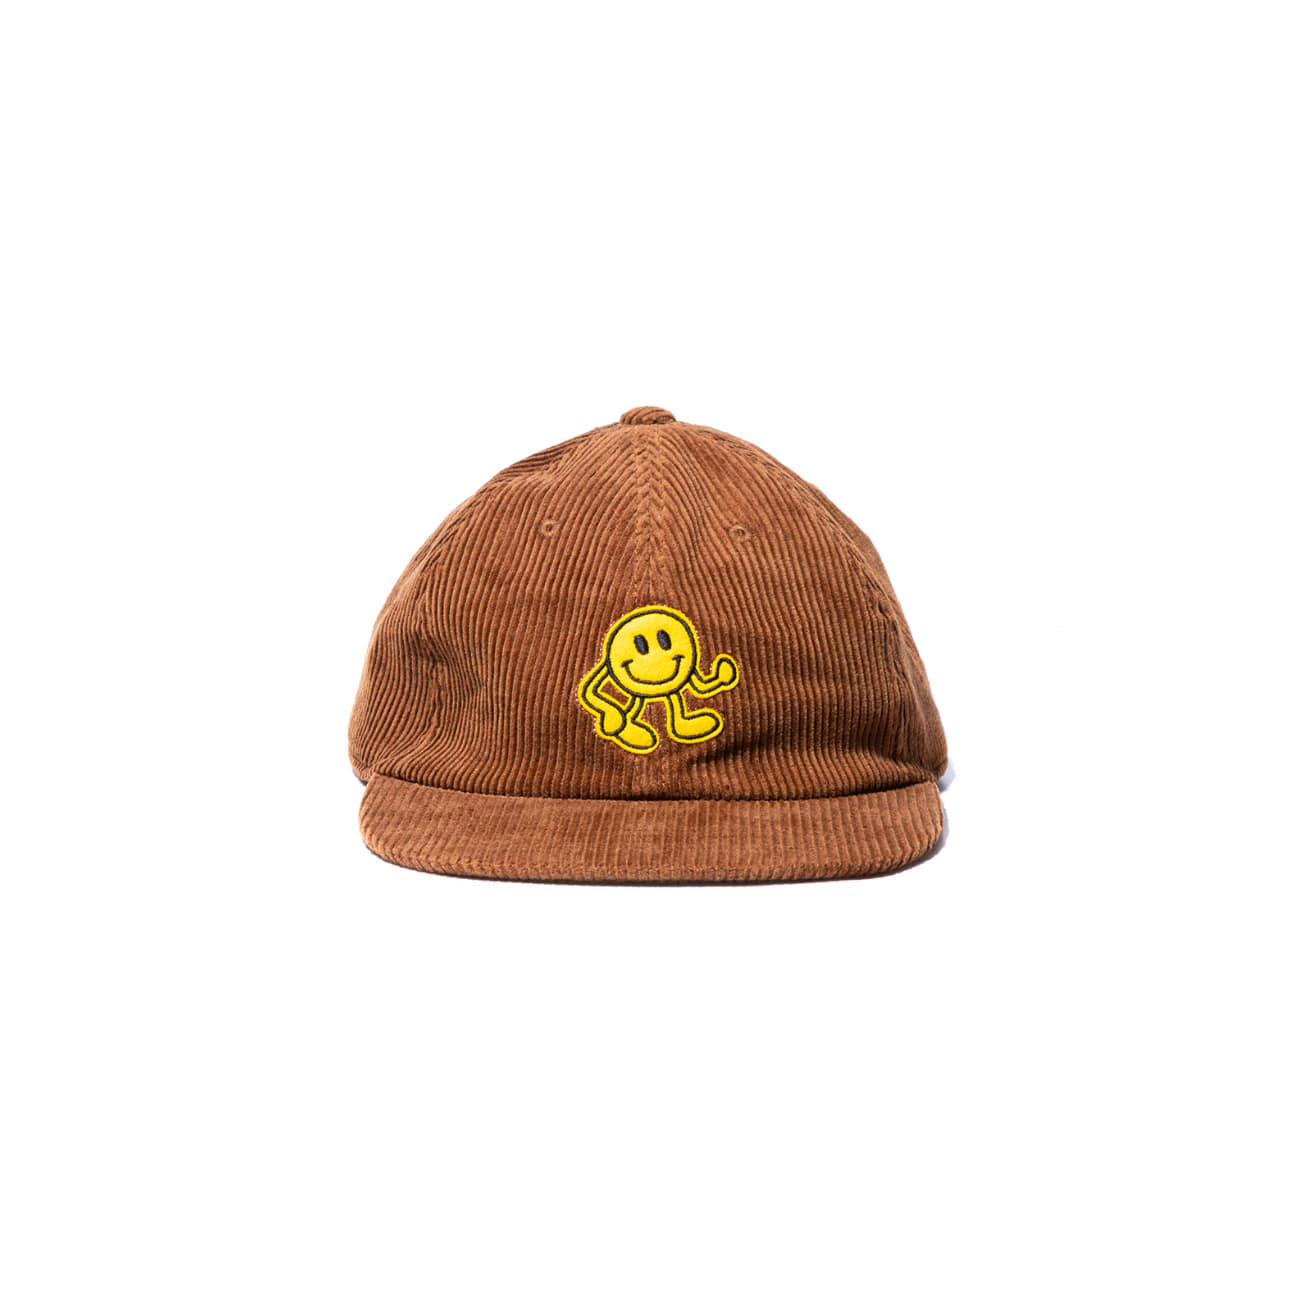 Dancing Smile Fat Corduroy Cap